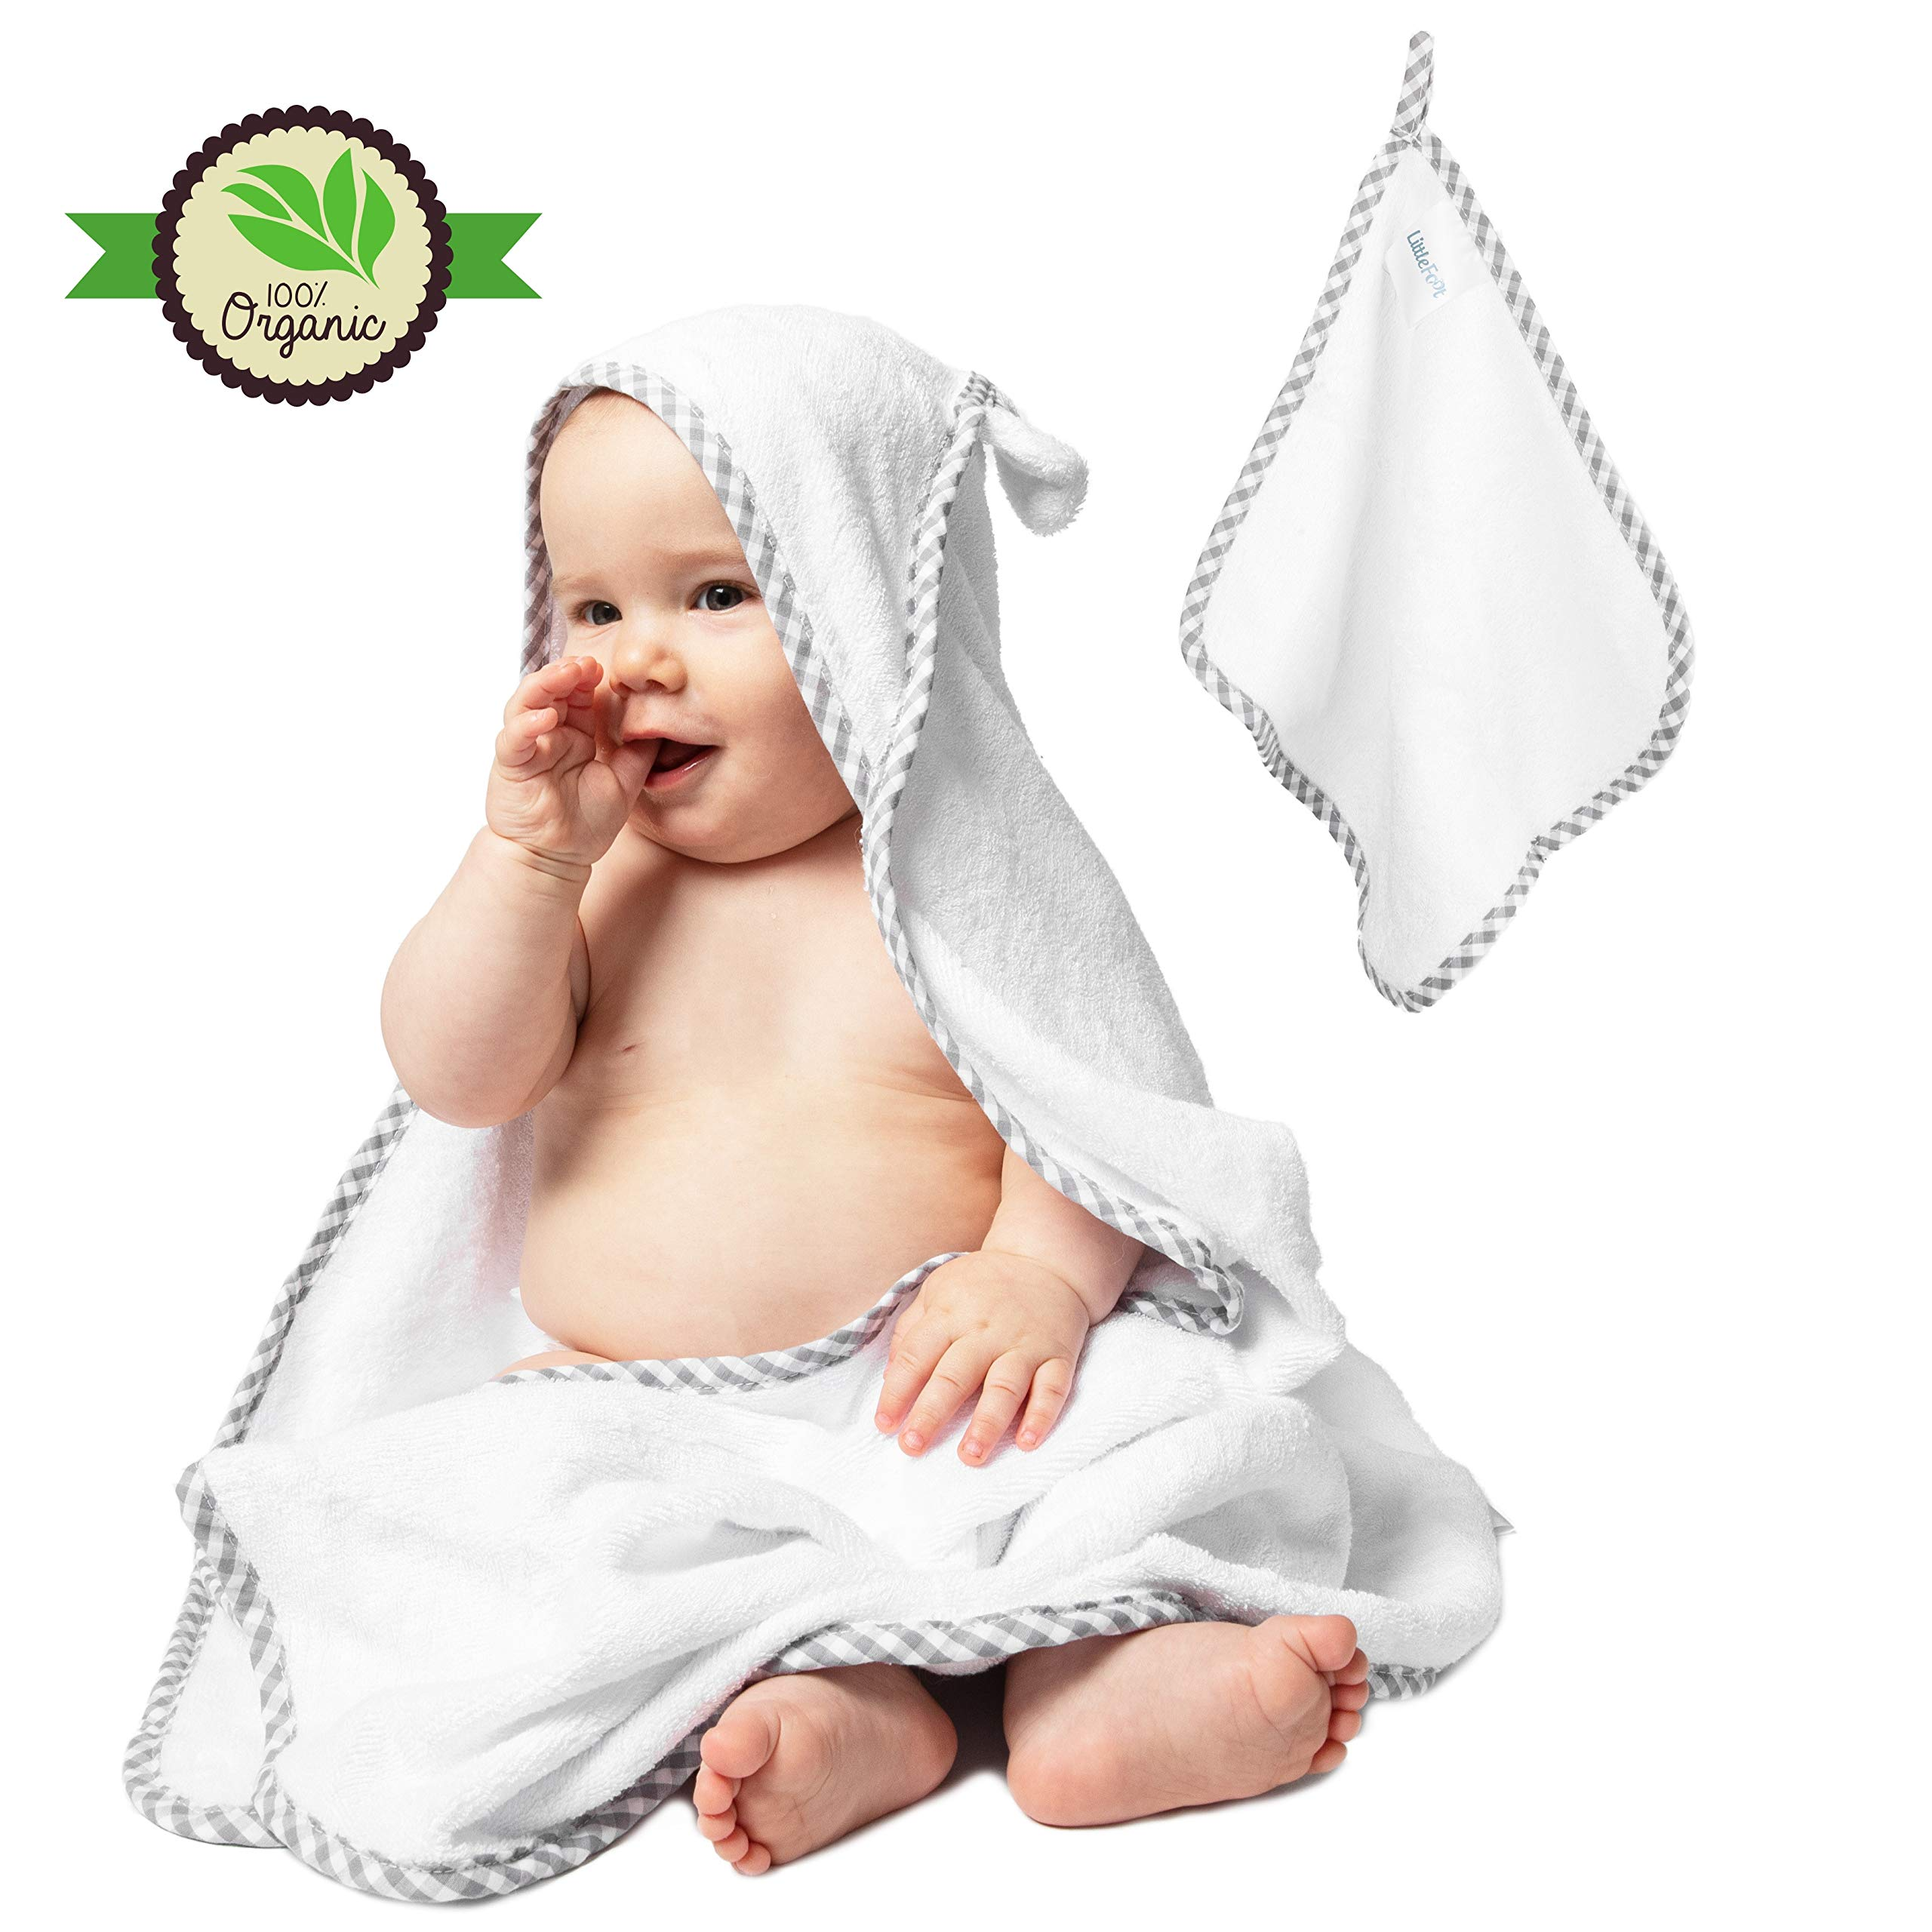 100% Organic Bamboo Hooded Baby Toddler Towel with Ears - Premium Hypoallergenic 500GSM Extra Large (35X35) with Washcloth for Boys and Girls Baby Shower Gift Set